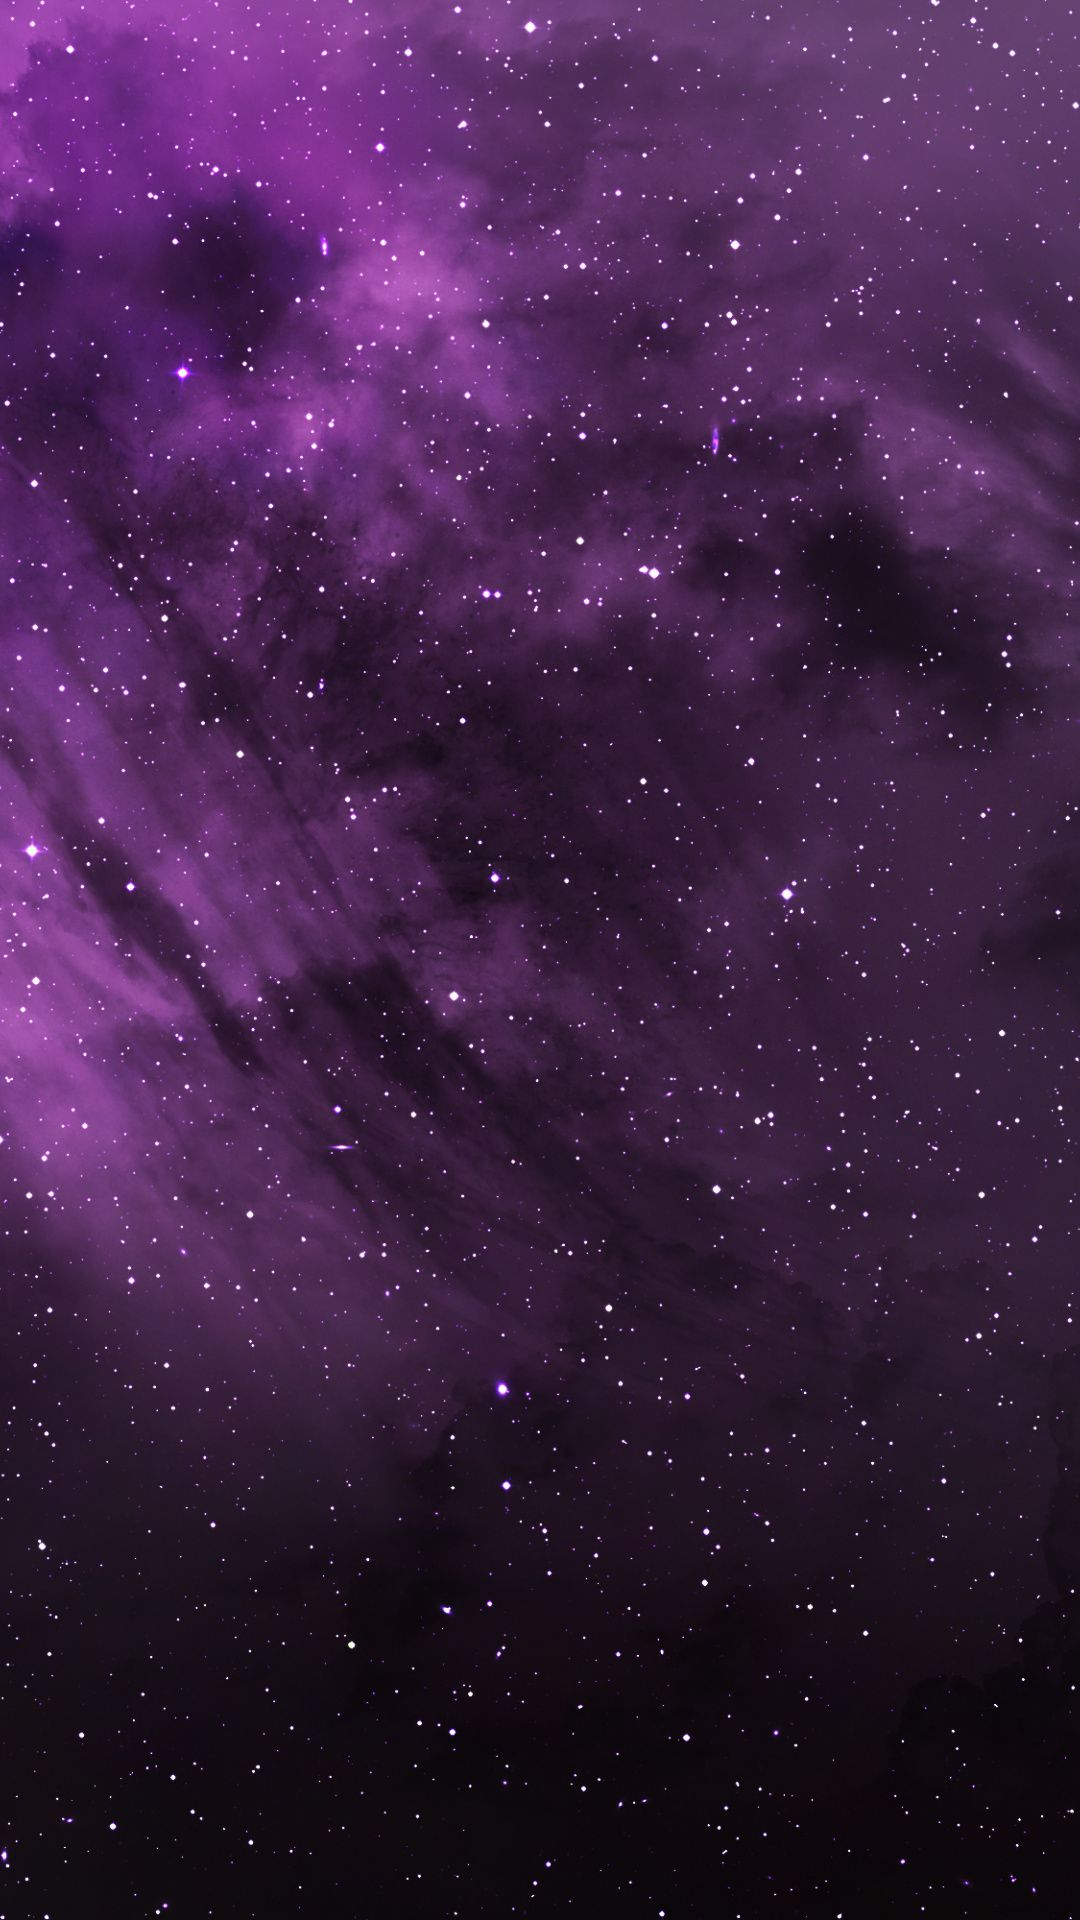 1080x1920 Purple Clouds Cosmos Stars Space Wallpaper Purple Galaxy Wallpaper Wallpaper Space Purple Wallpaper